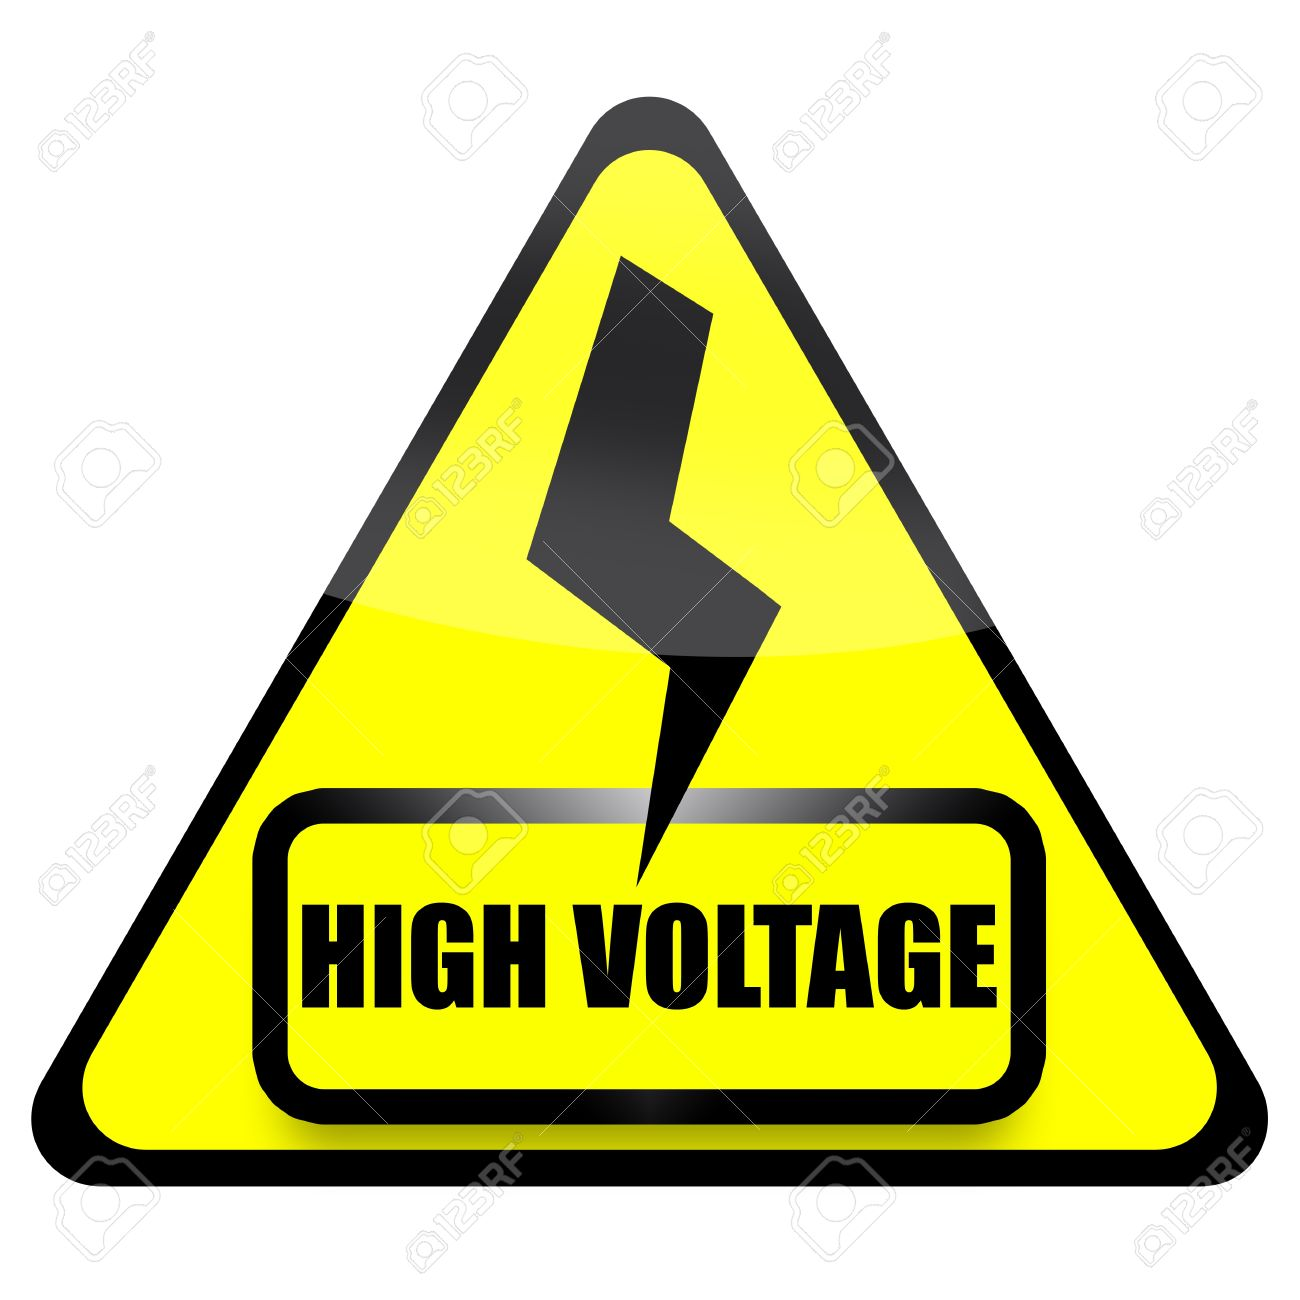 High Voltage Sign With Thunder Isolated Over White Background.